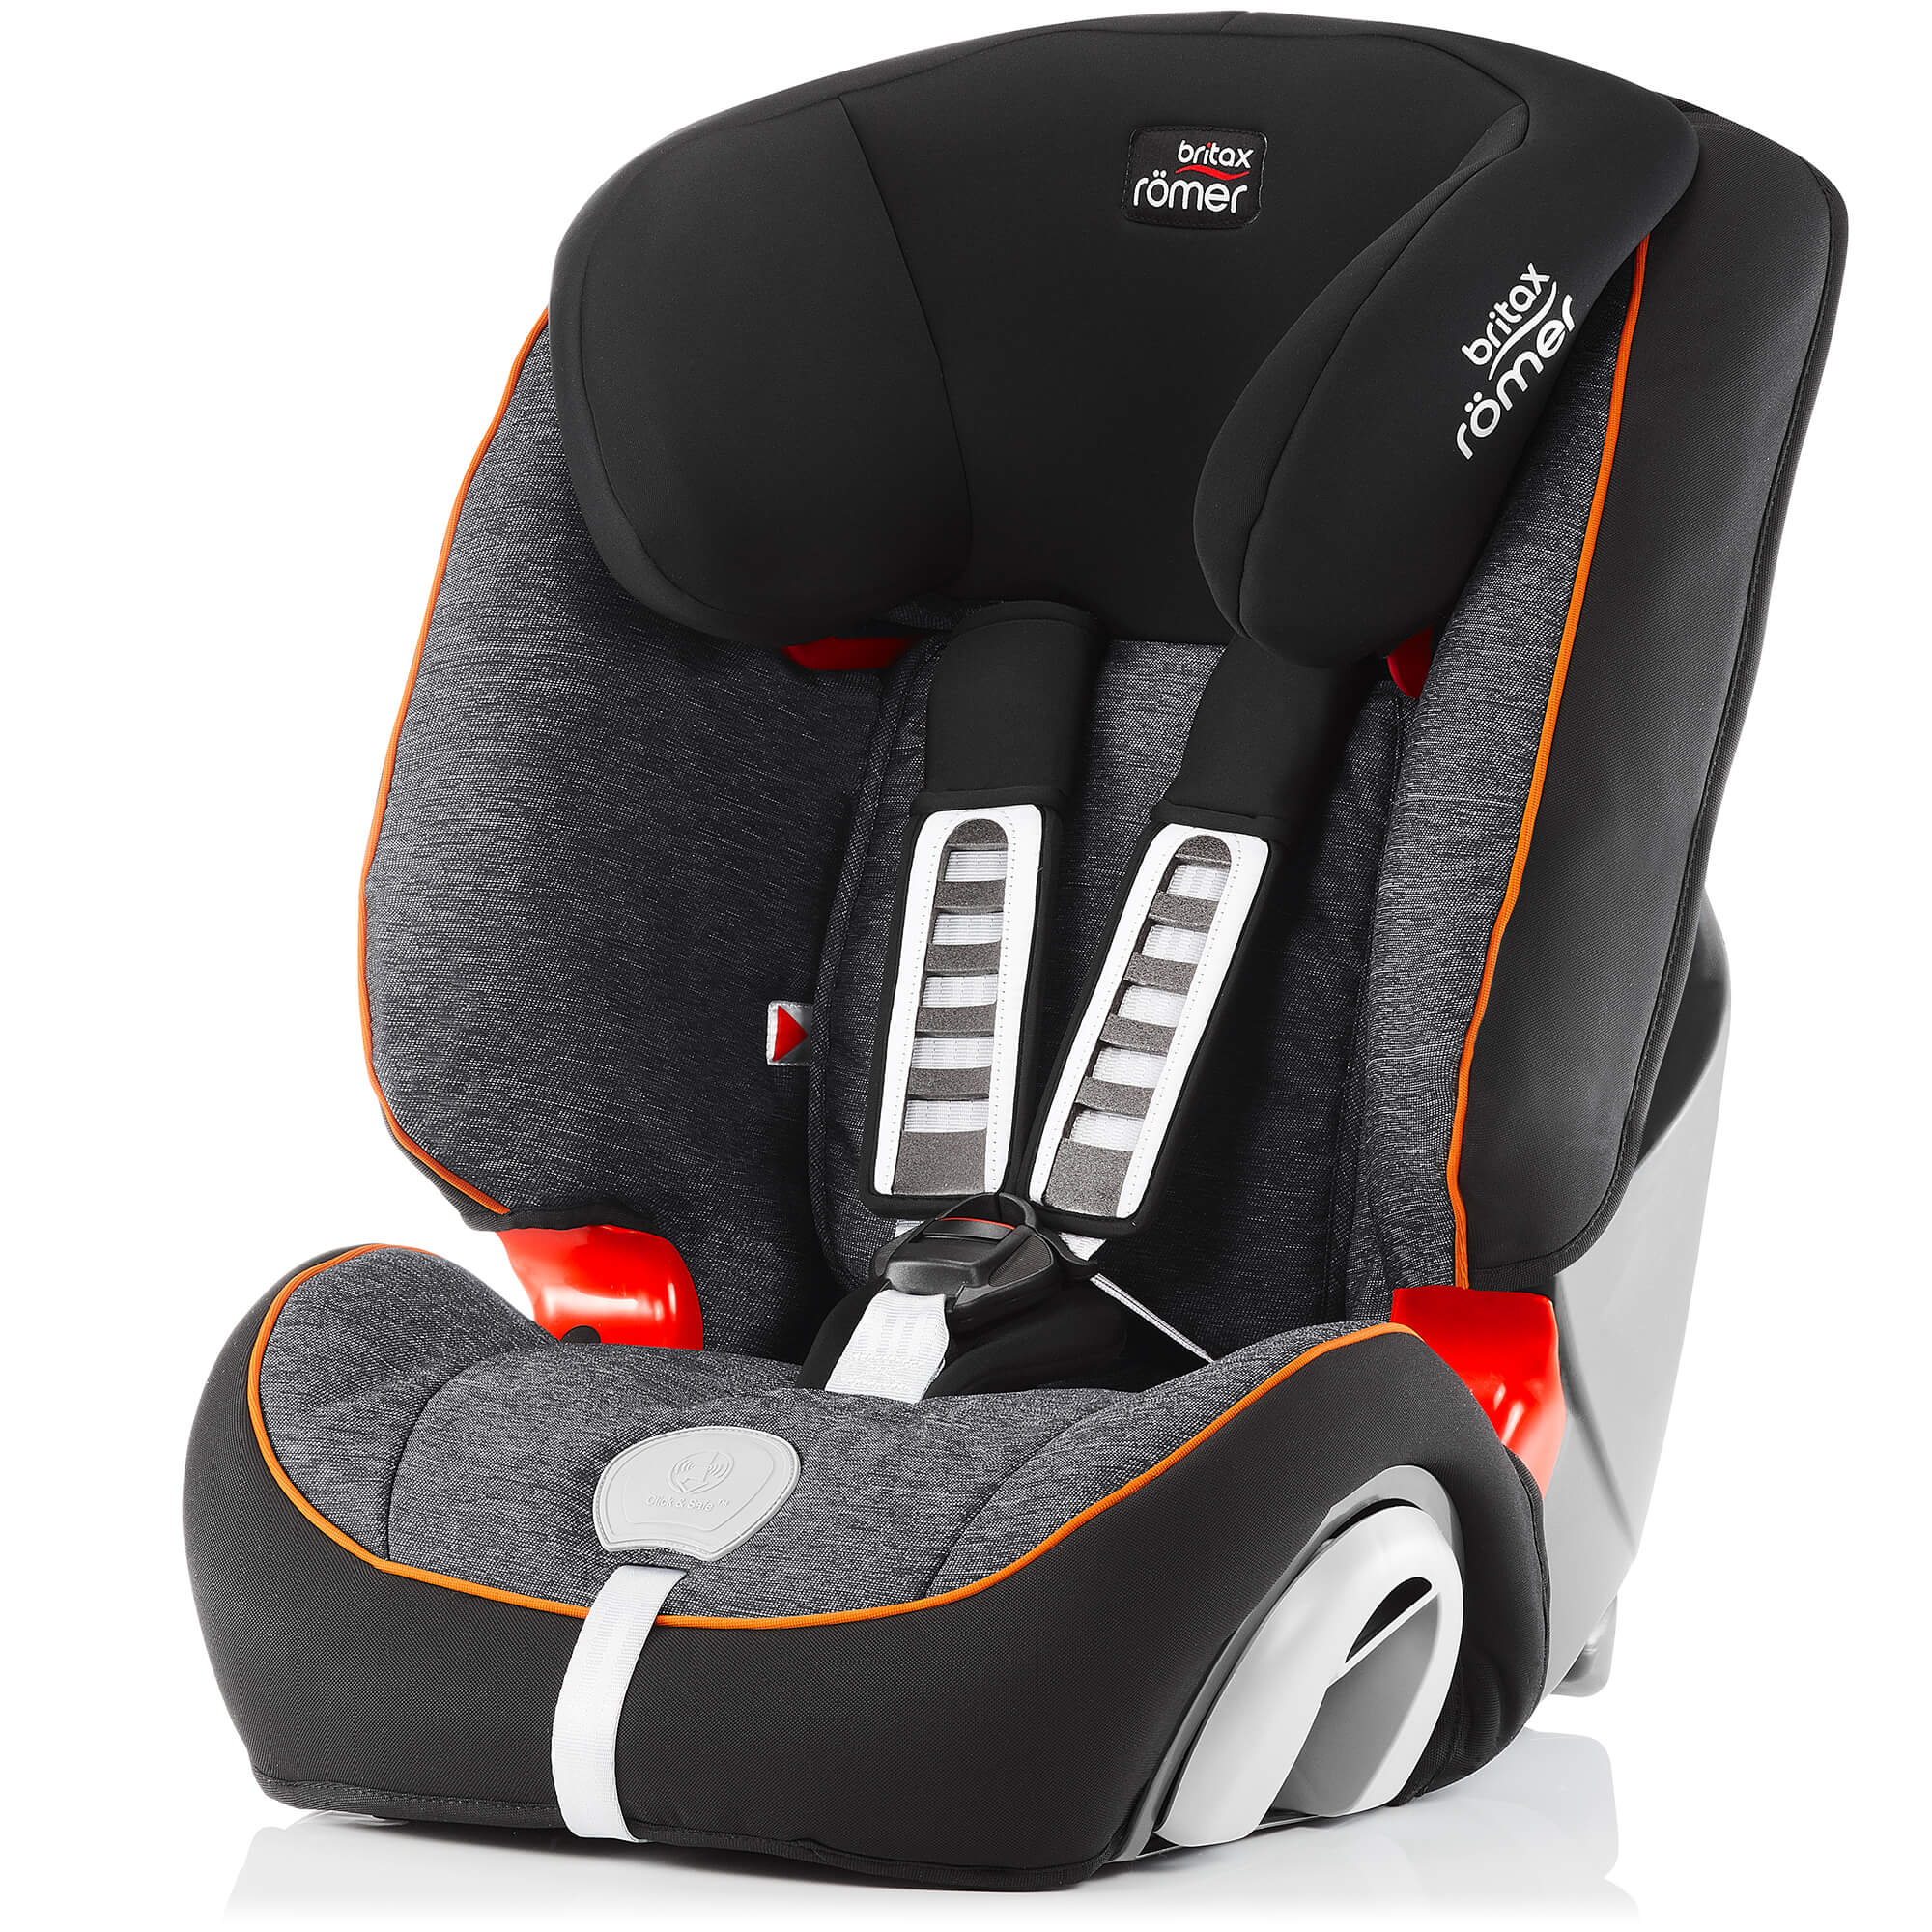 britax r mer evolva 1 2 3 plus black marble child seat. Black Bedroom Furniture Sets. Home Design Ideas